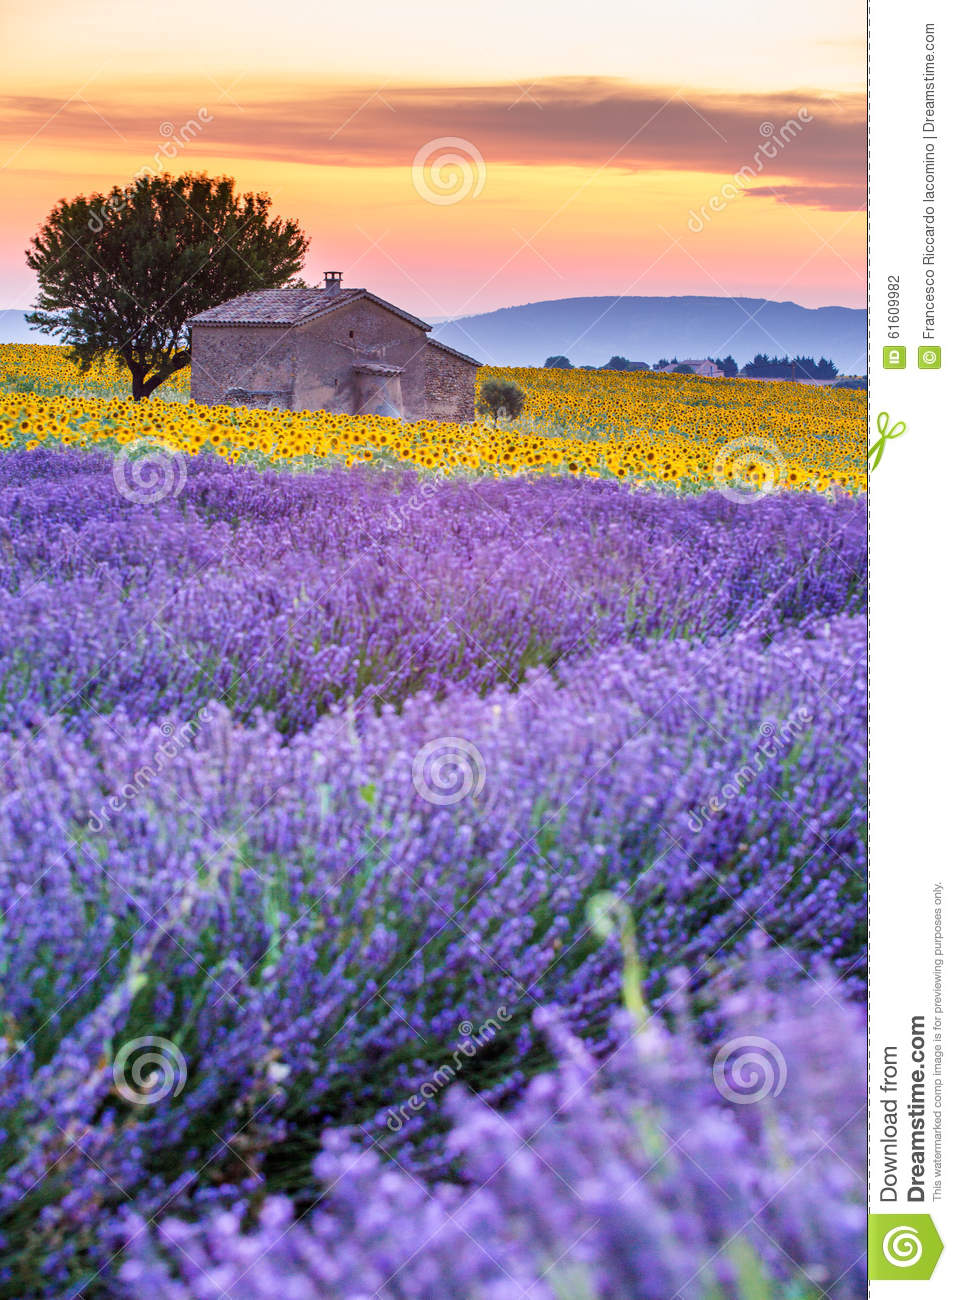 Provence, France, Valensole Plateau with purple lavender field